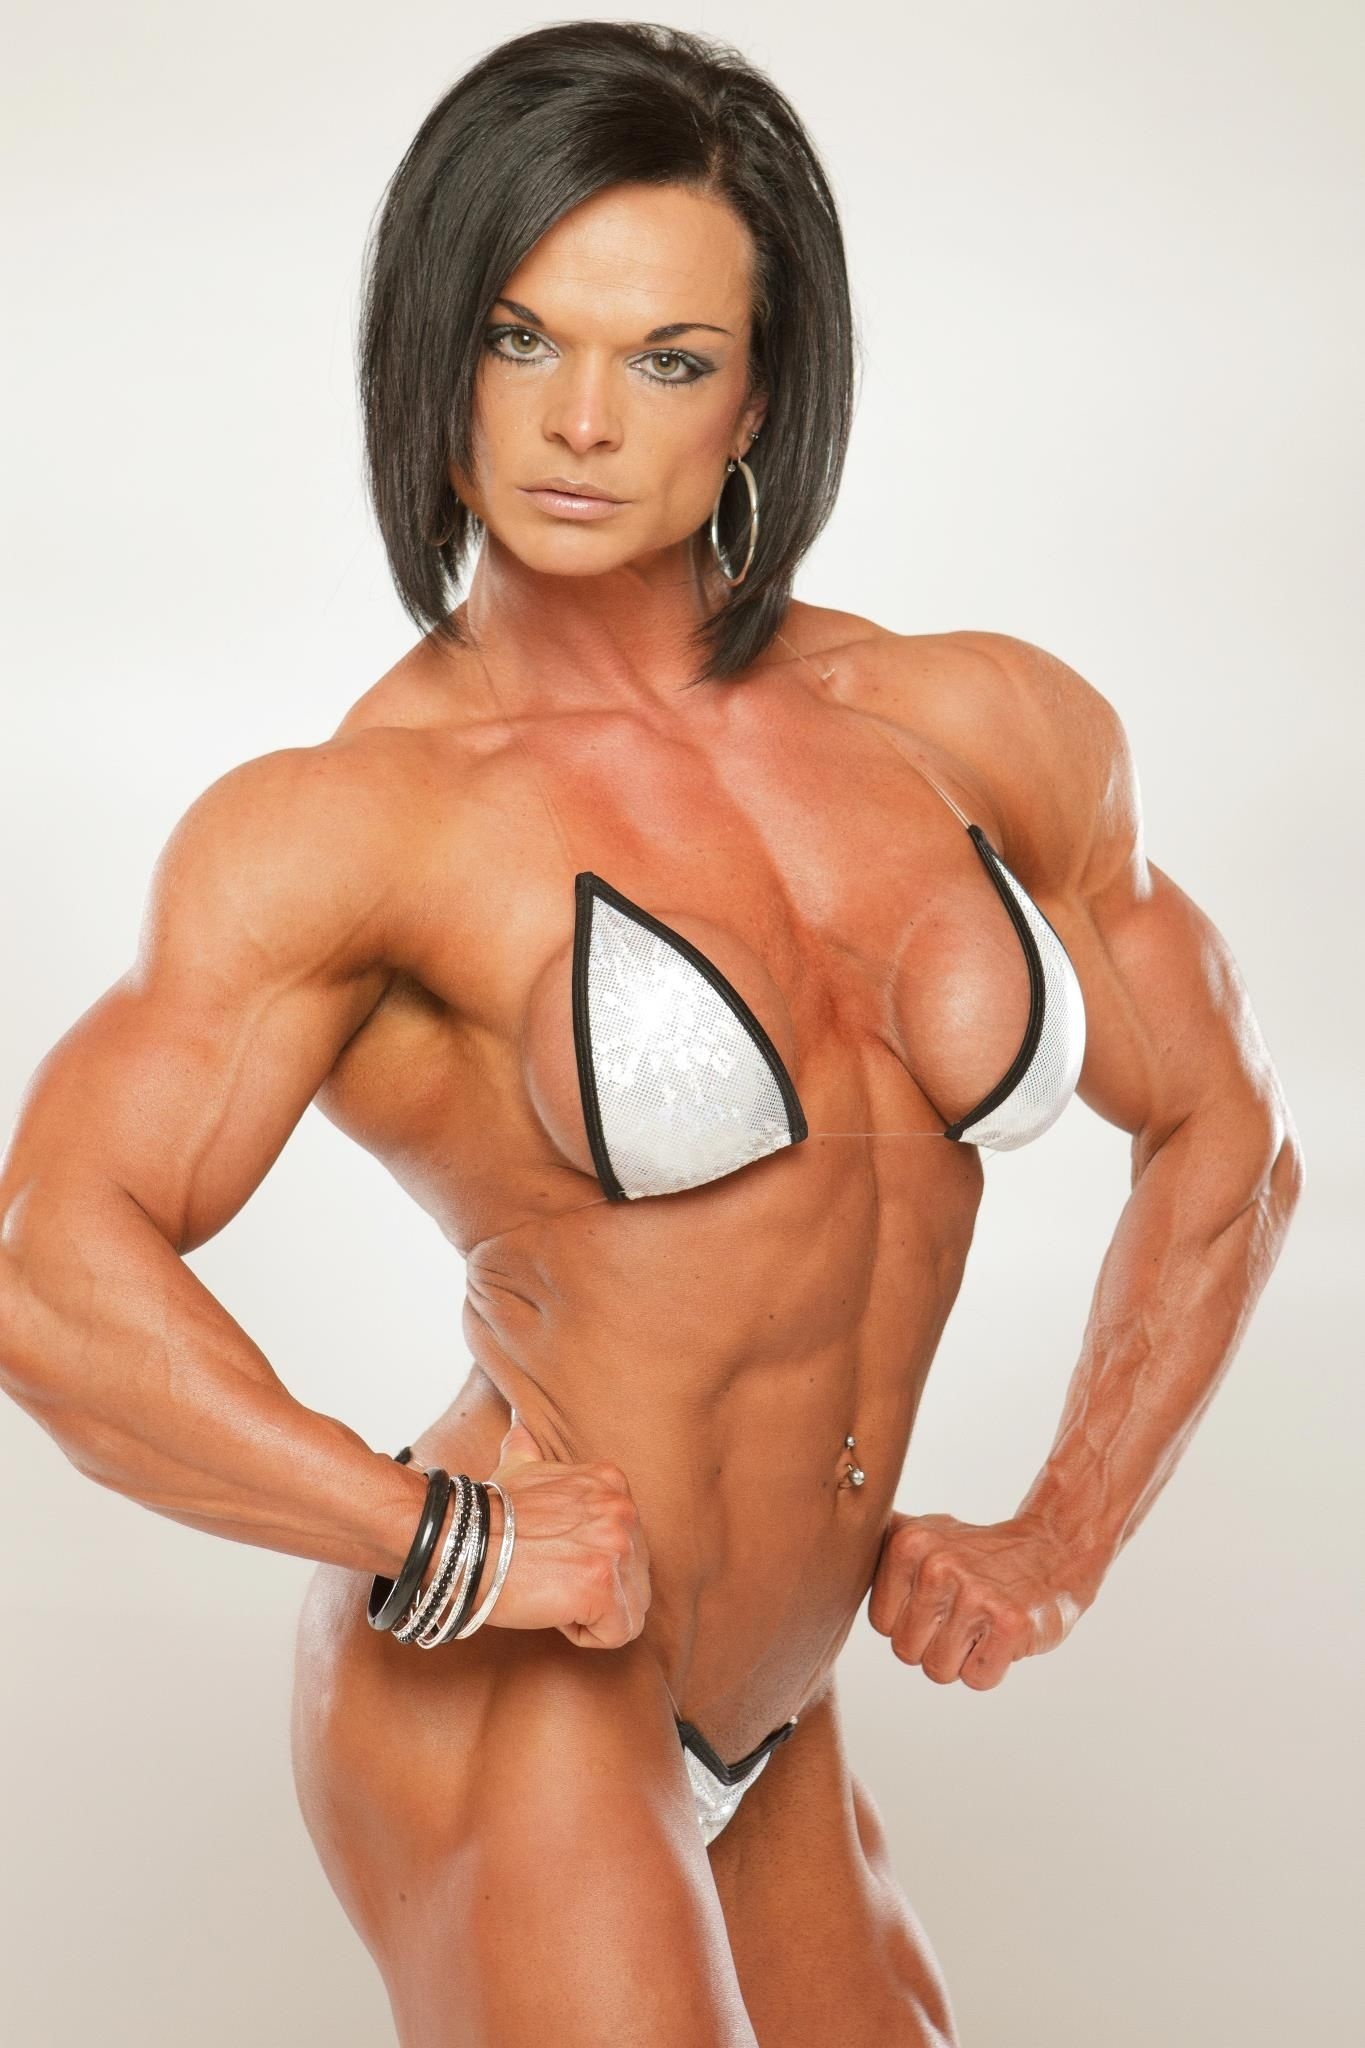 Sexy Muscle Girls Real Female Bodybuilders The Biggest Hardcore Porn  Hot Girl Hd -1409